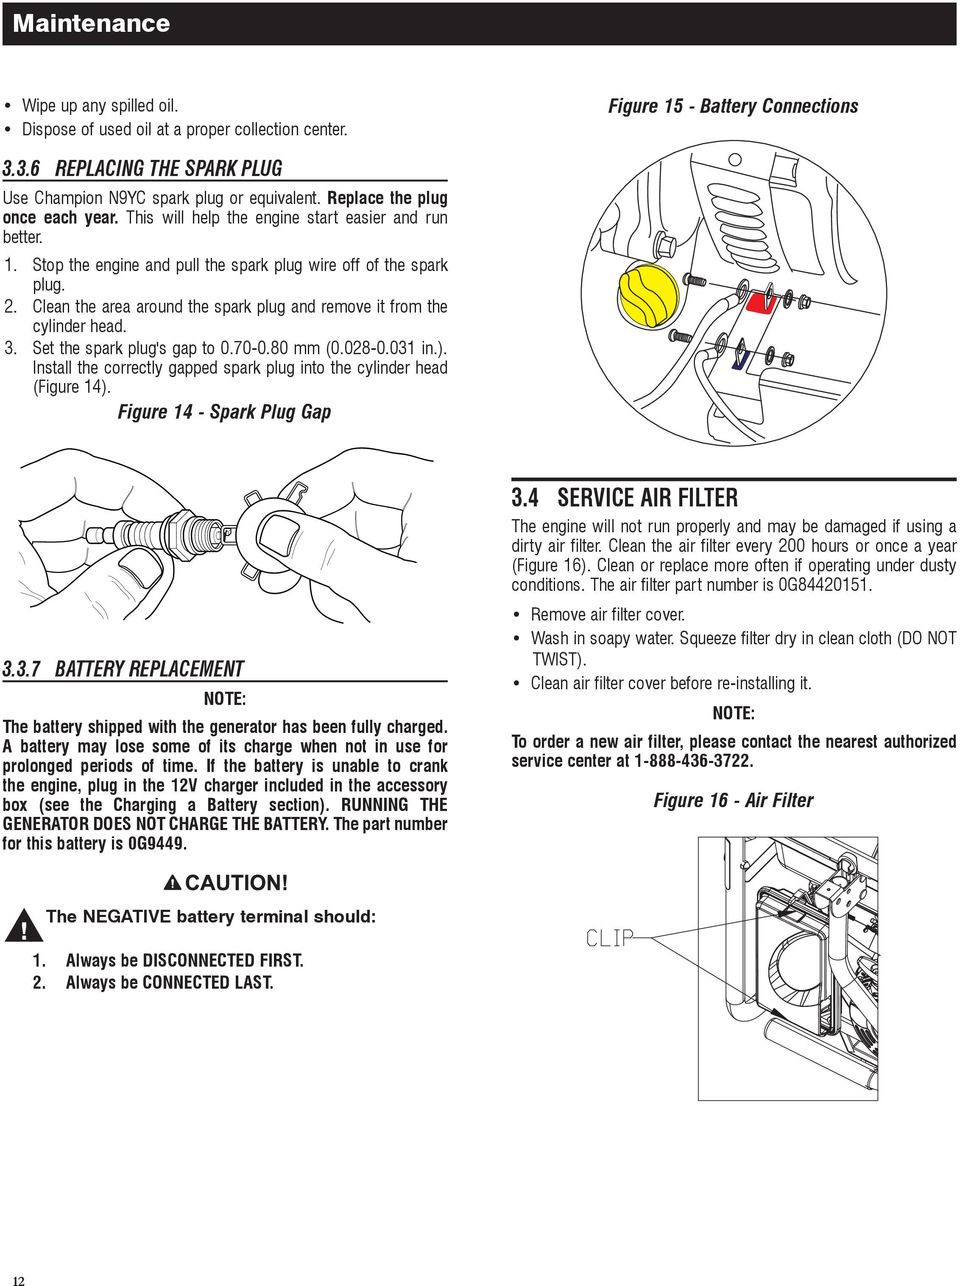 Clean the area around the spark plug and remove it from the cylinder head. 3. Set the spark plug's gap to 0.70-0.80 mm (0.028-0.031 in.).